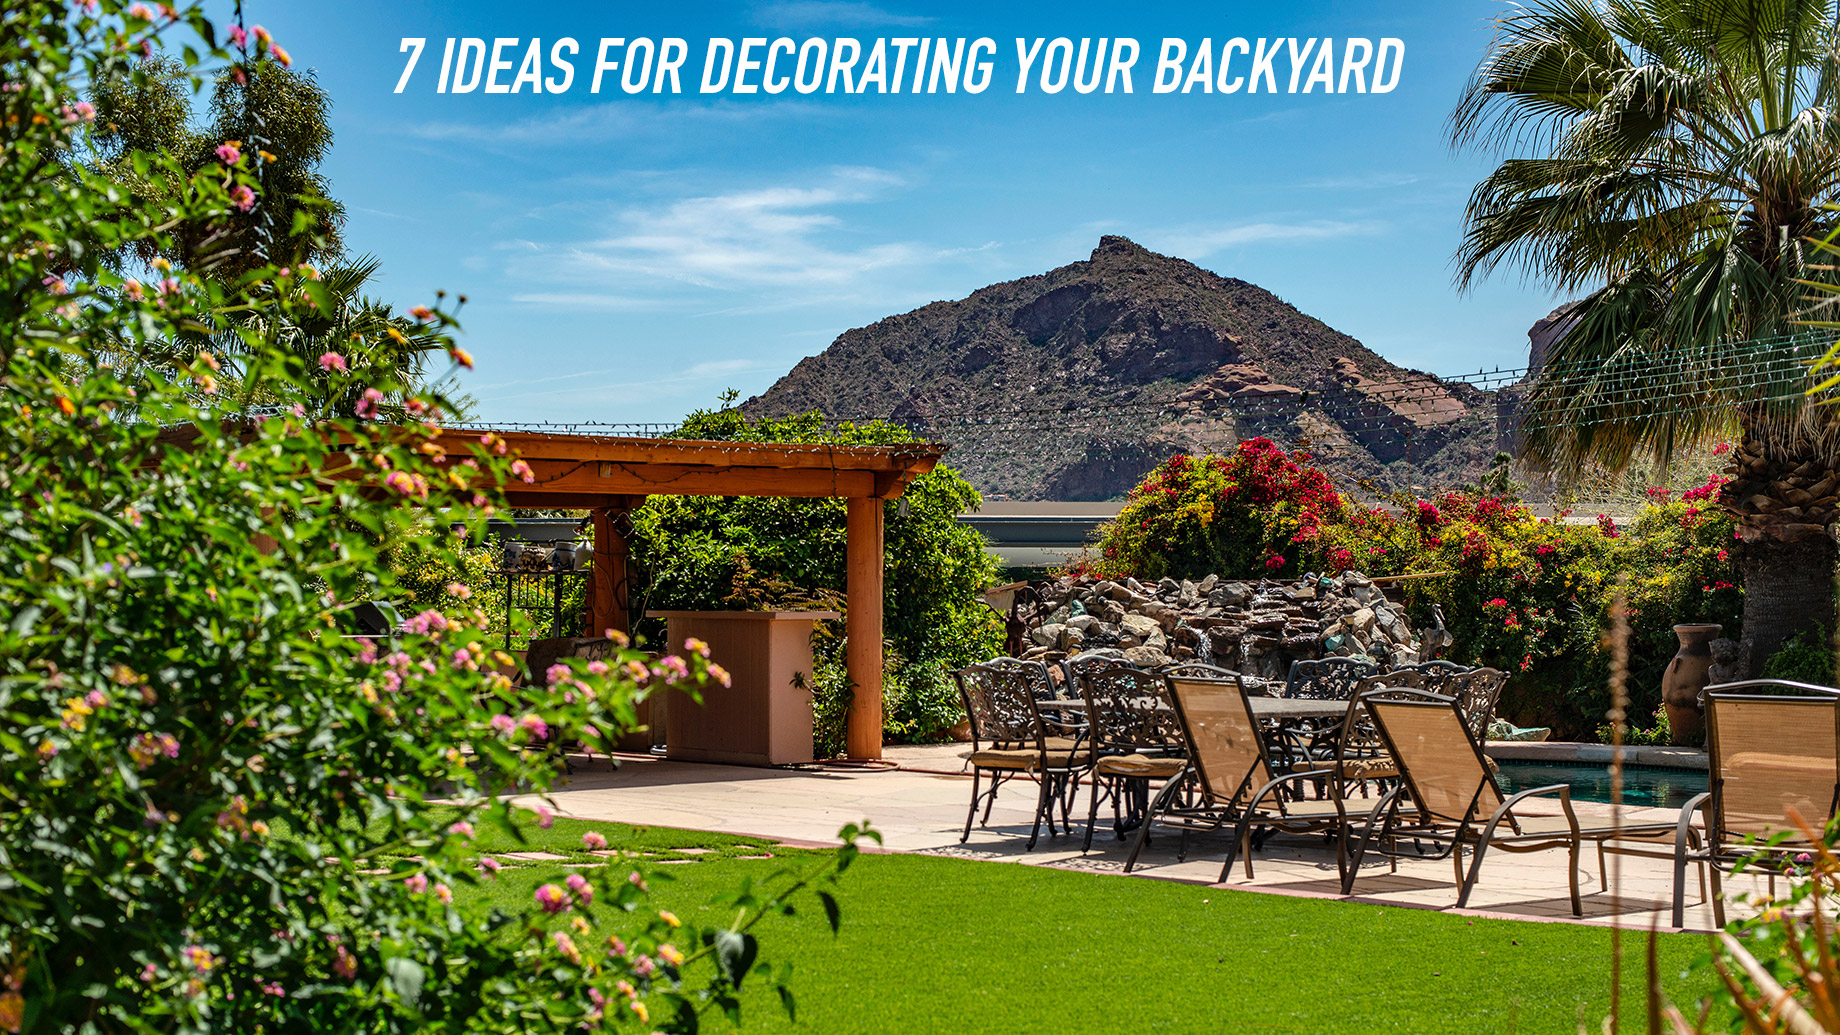 7 Ideas for Decorating Your Backyard